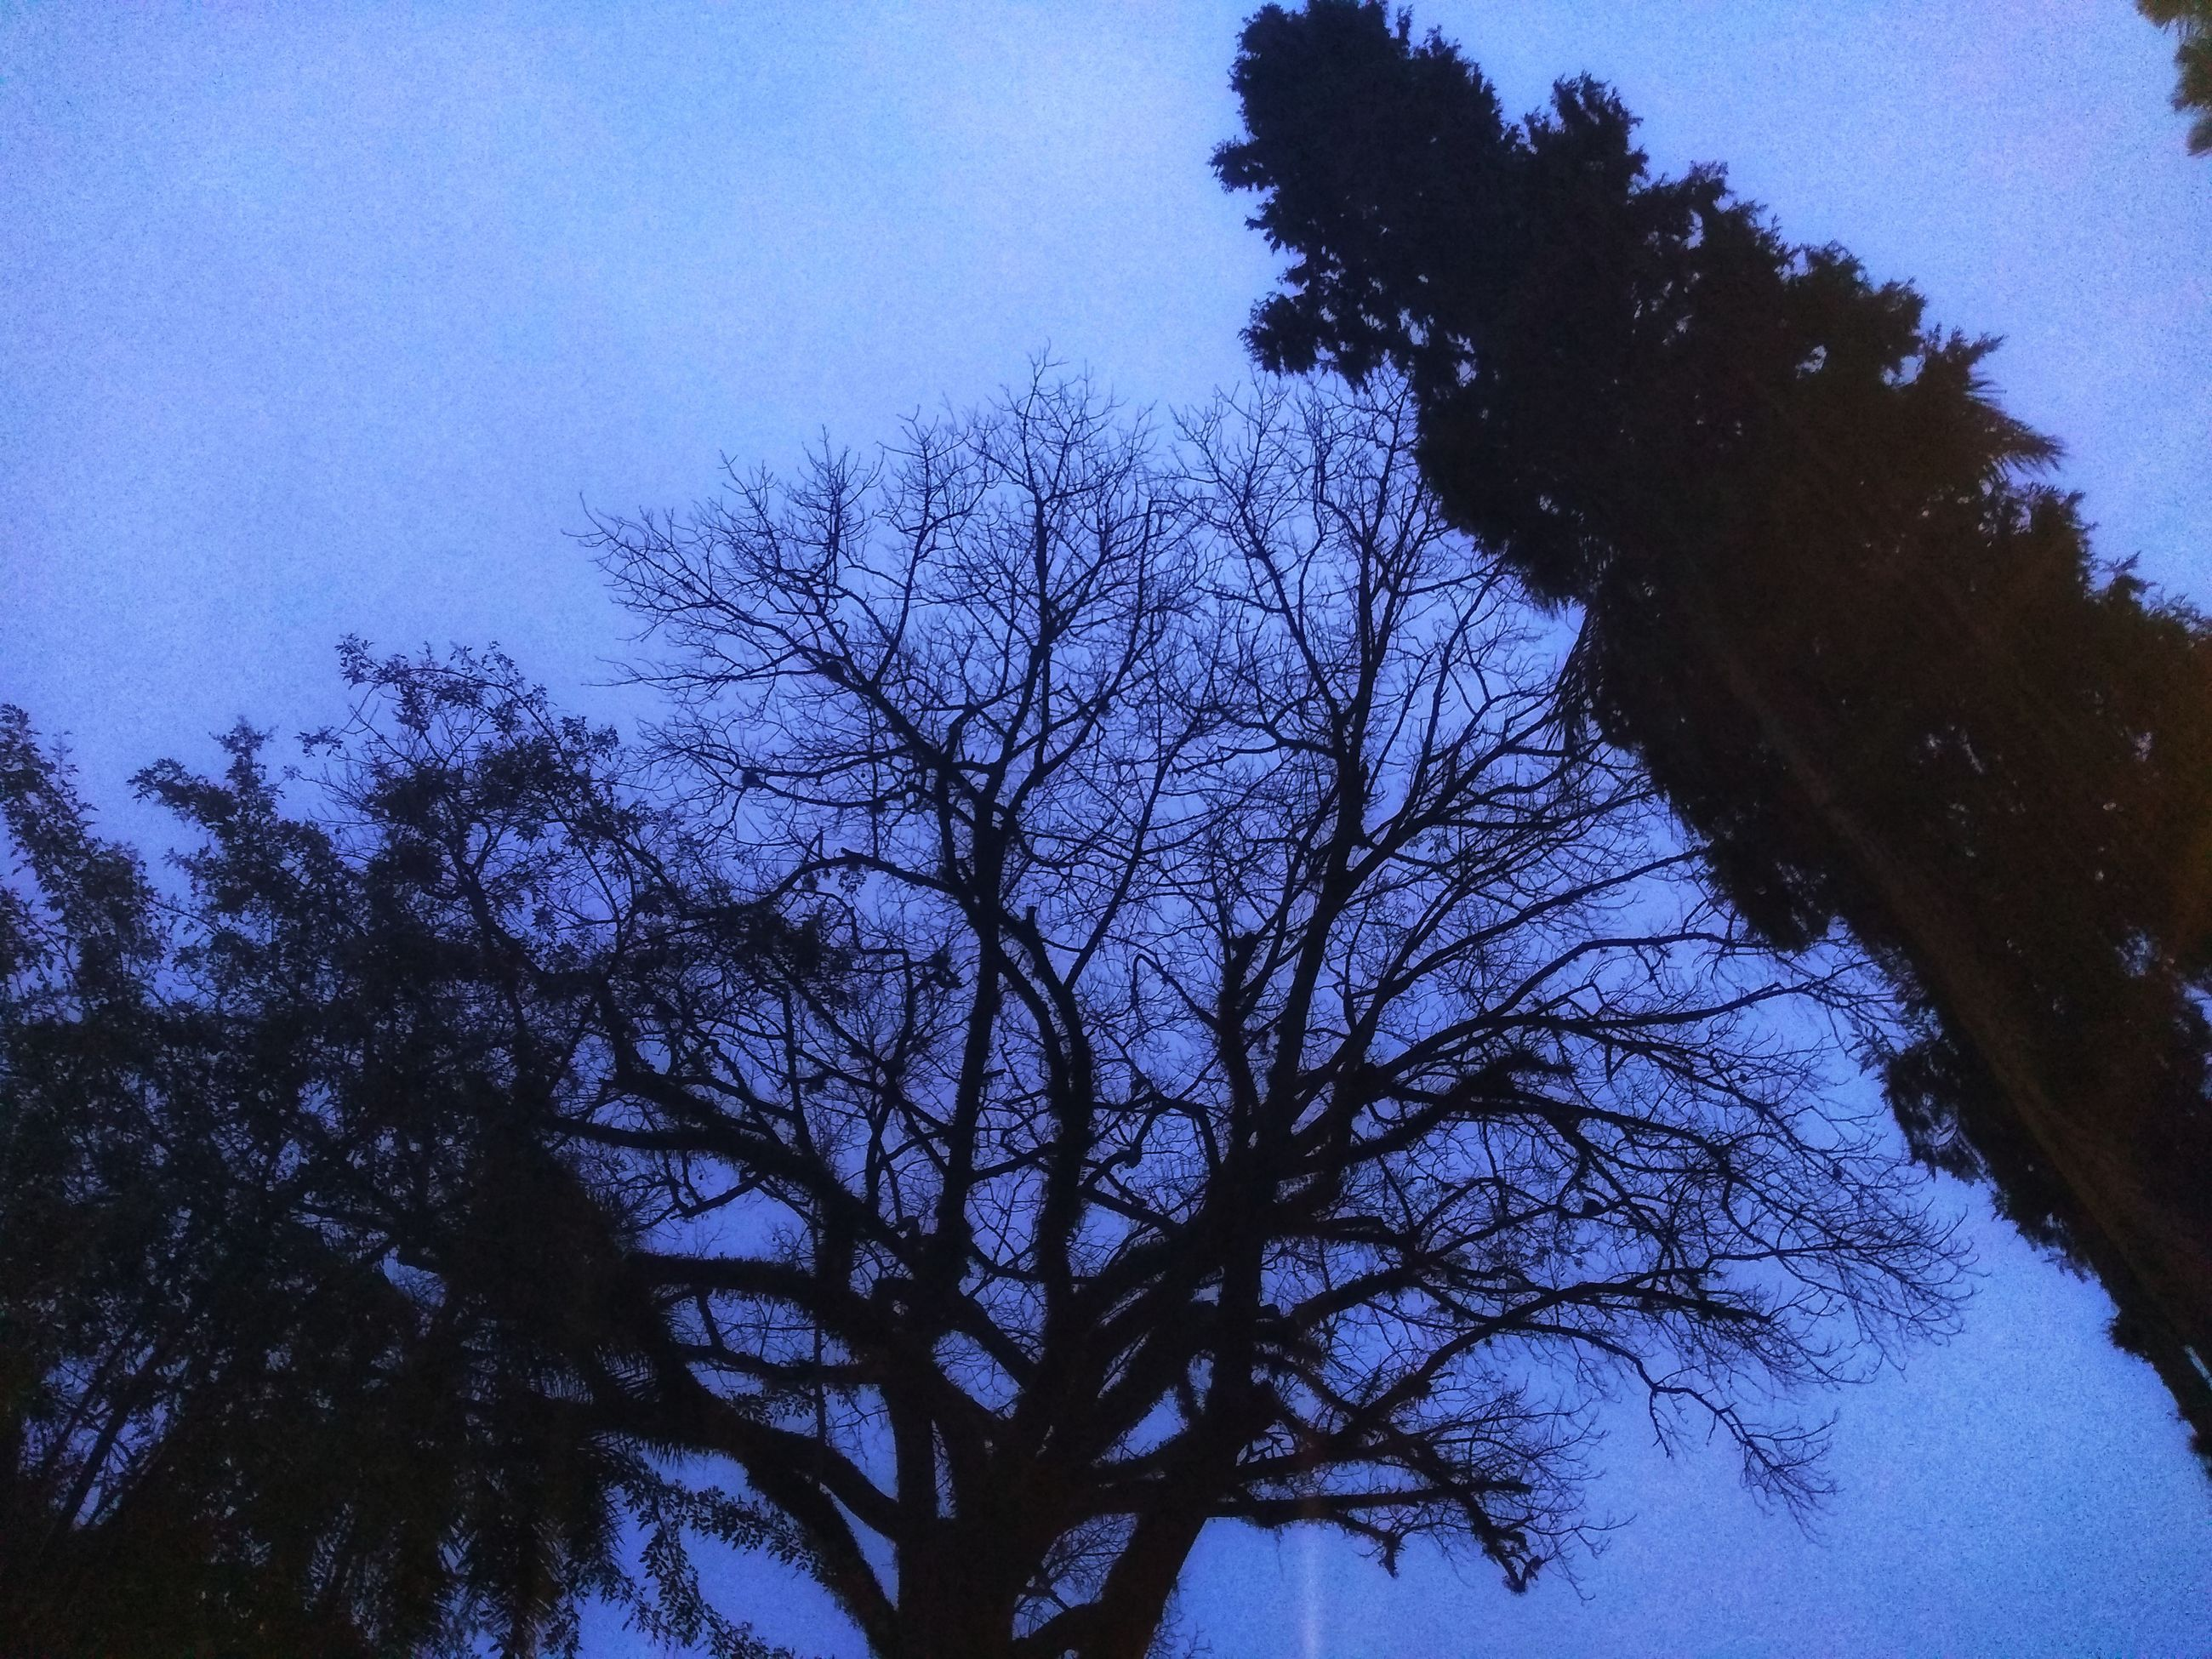 tree, plant, sky, branch, bare tree, low angle view, silhouette, nature, no people, tranquility, beauty in nature, outdoors, growth, clear sky, scenics - nature, tranquil scene, dusk, night, blue, tree canopy